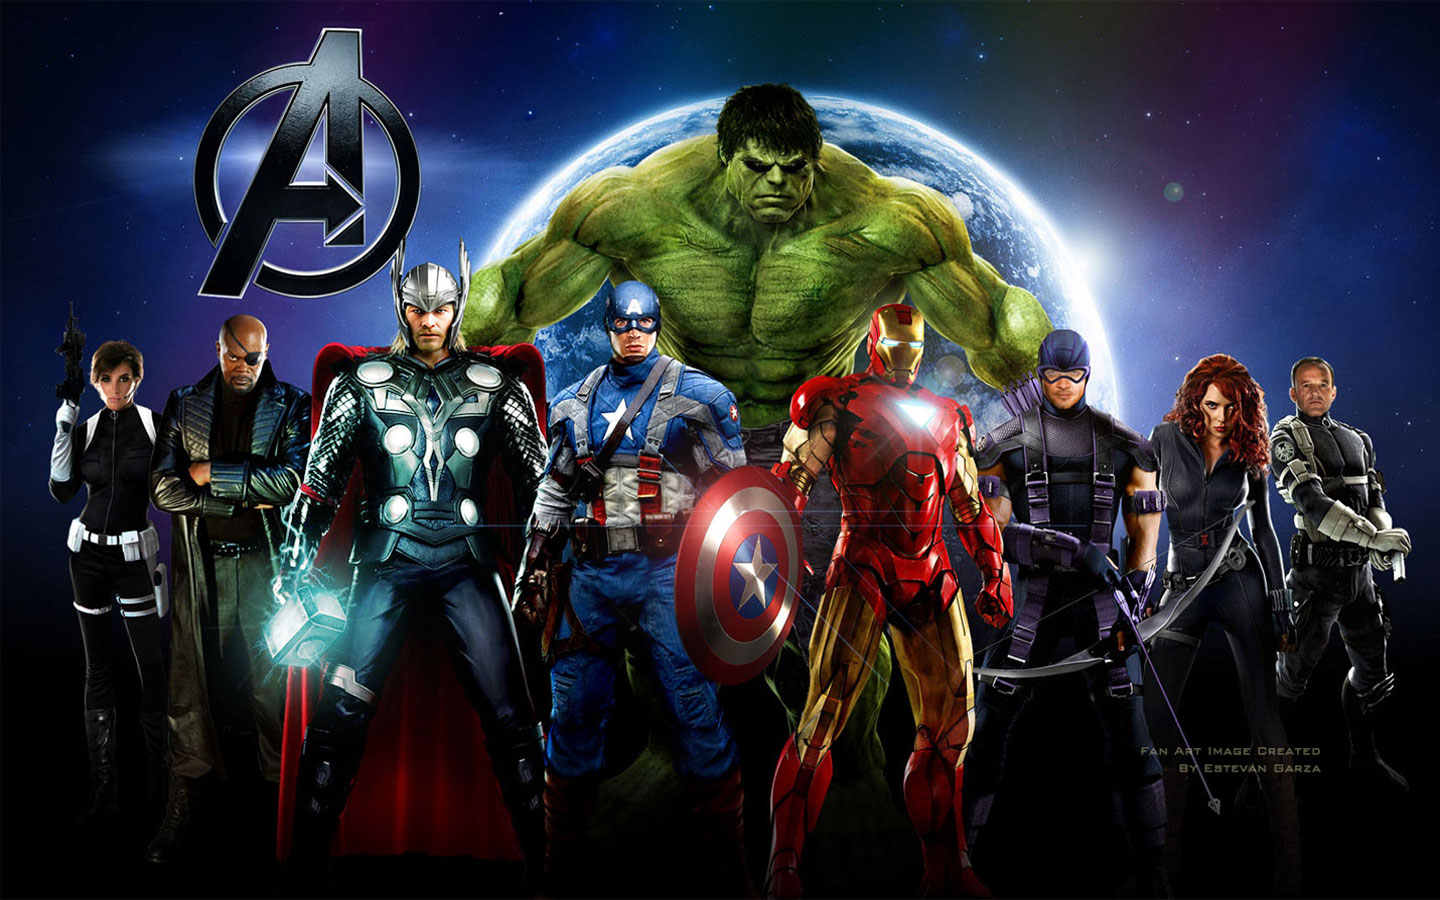 Avengers Wallpaper Movie Widescreen Avengers Movie 855 HD Wallpaper 1440x900